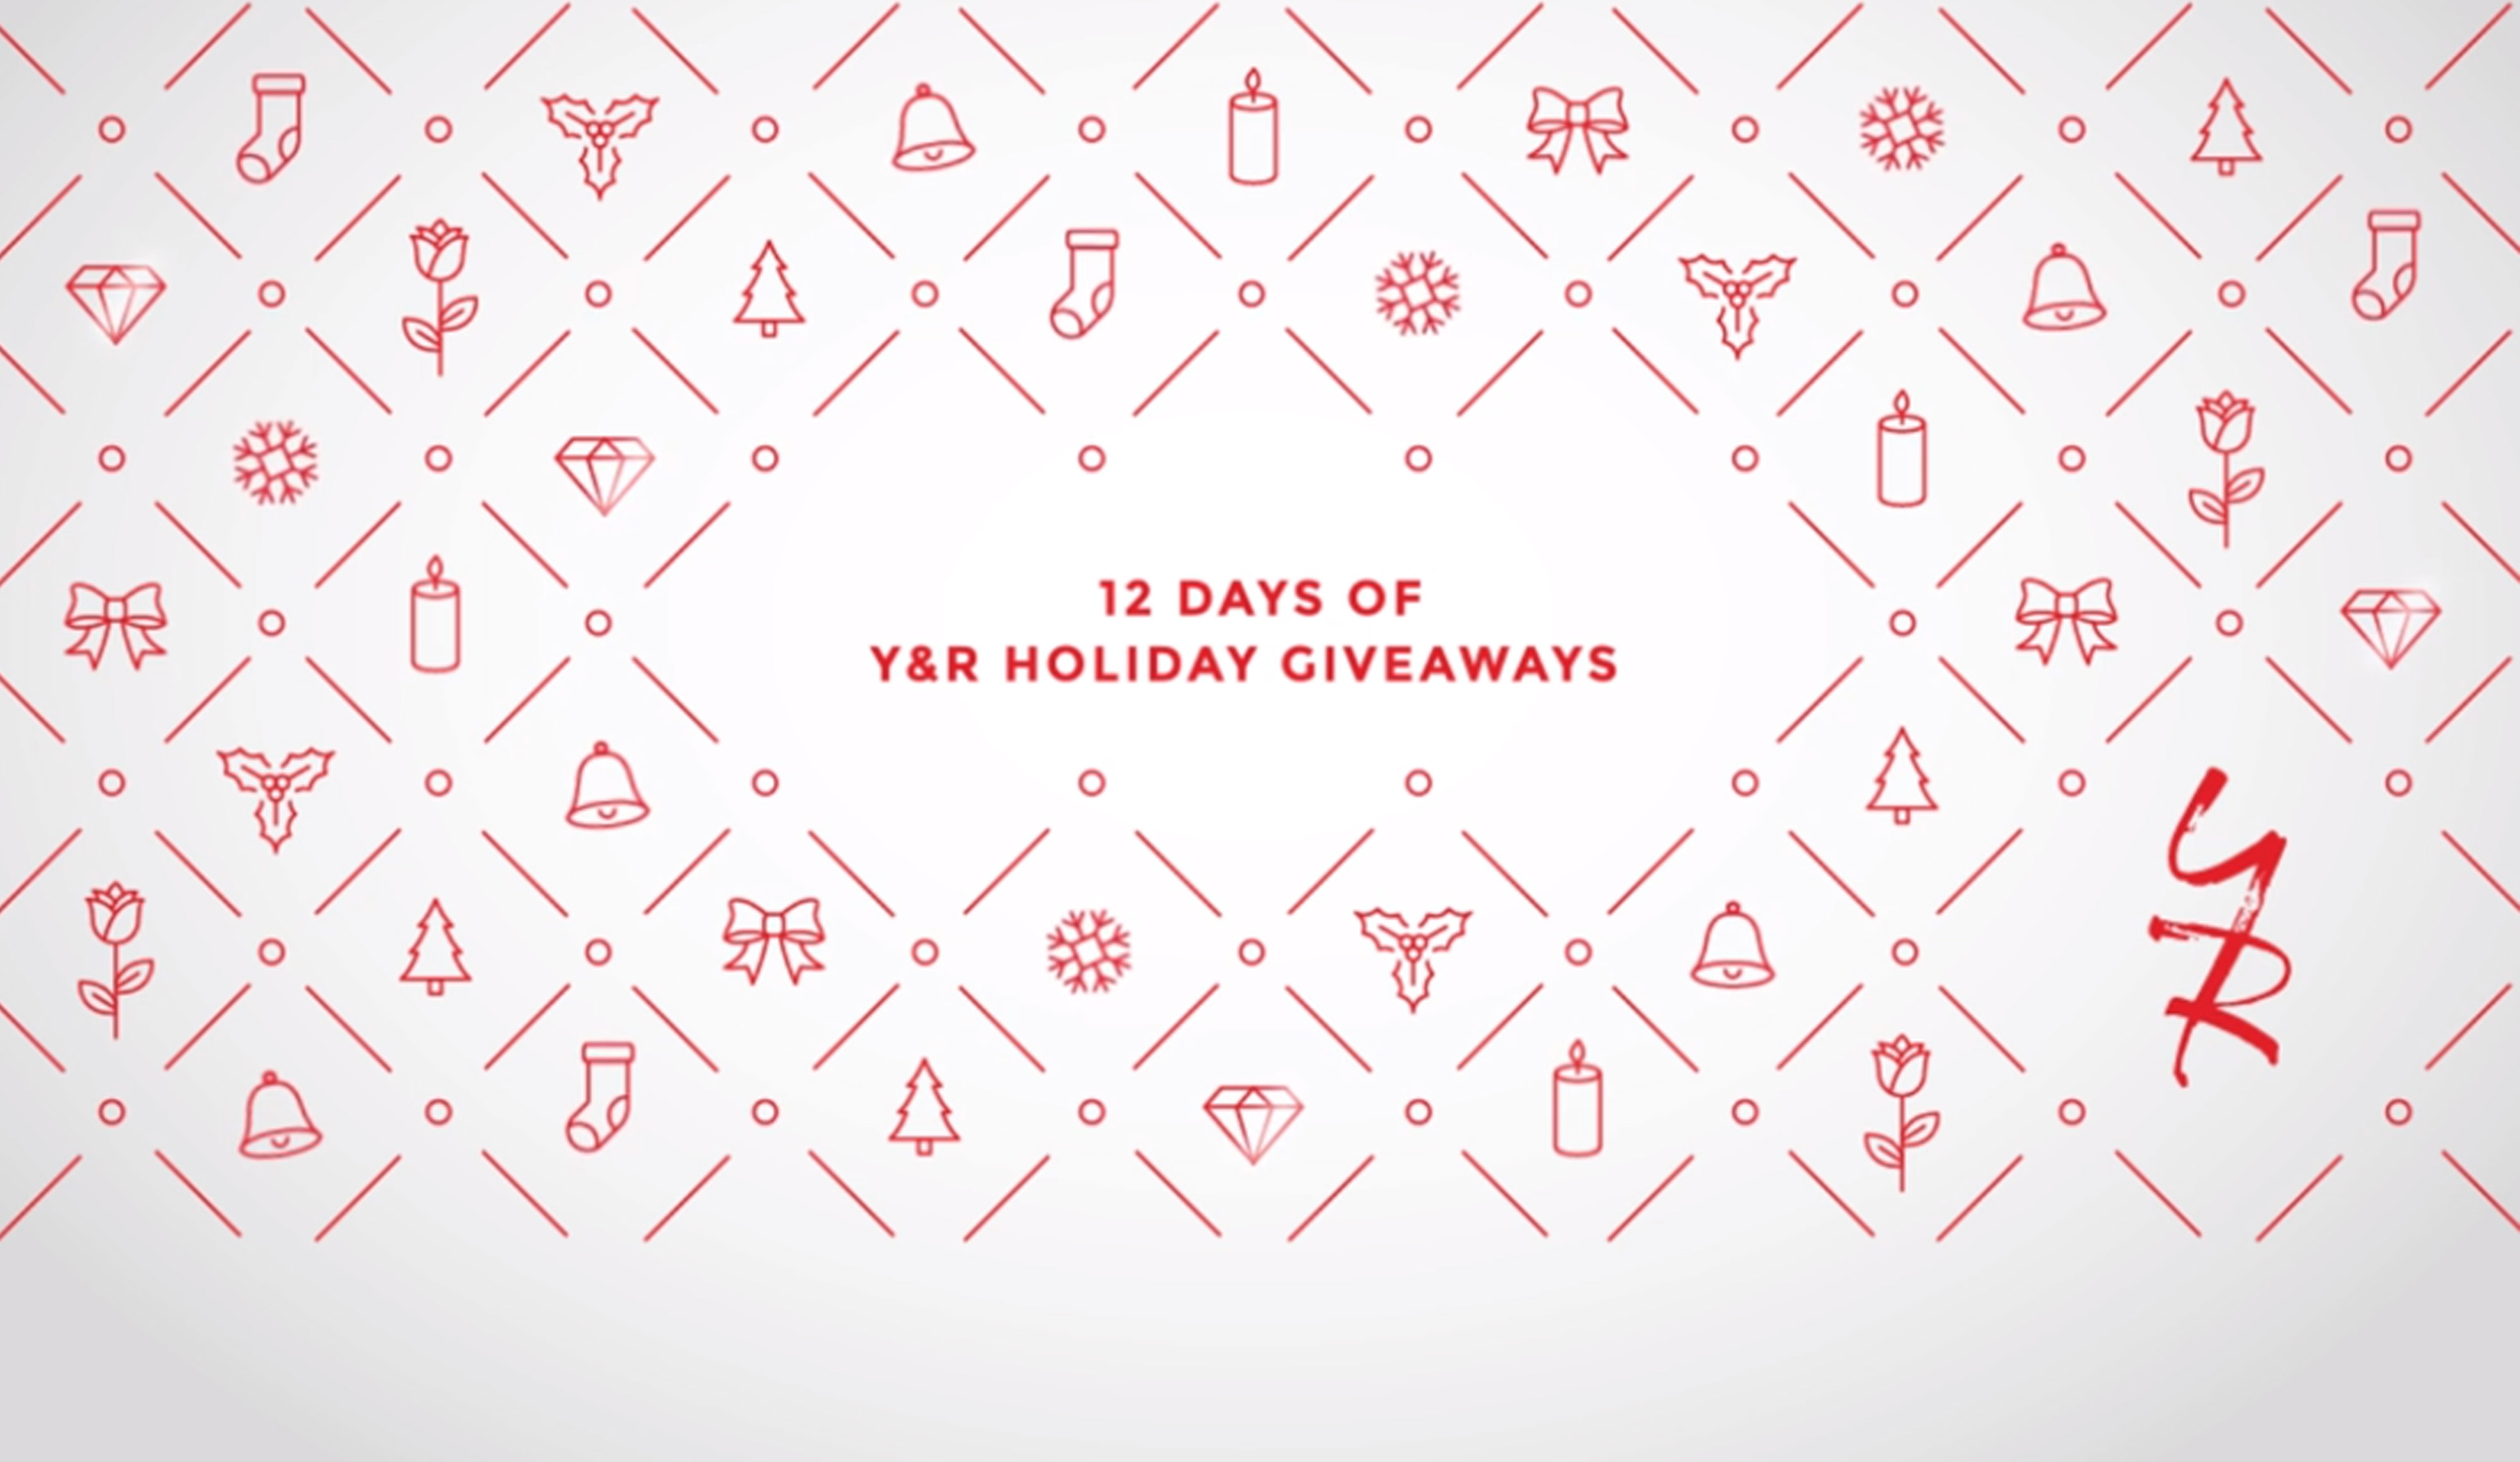 Giveaway! Celebrate the Holidays with 12 Days of Y&R Exclusives